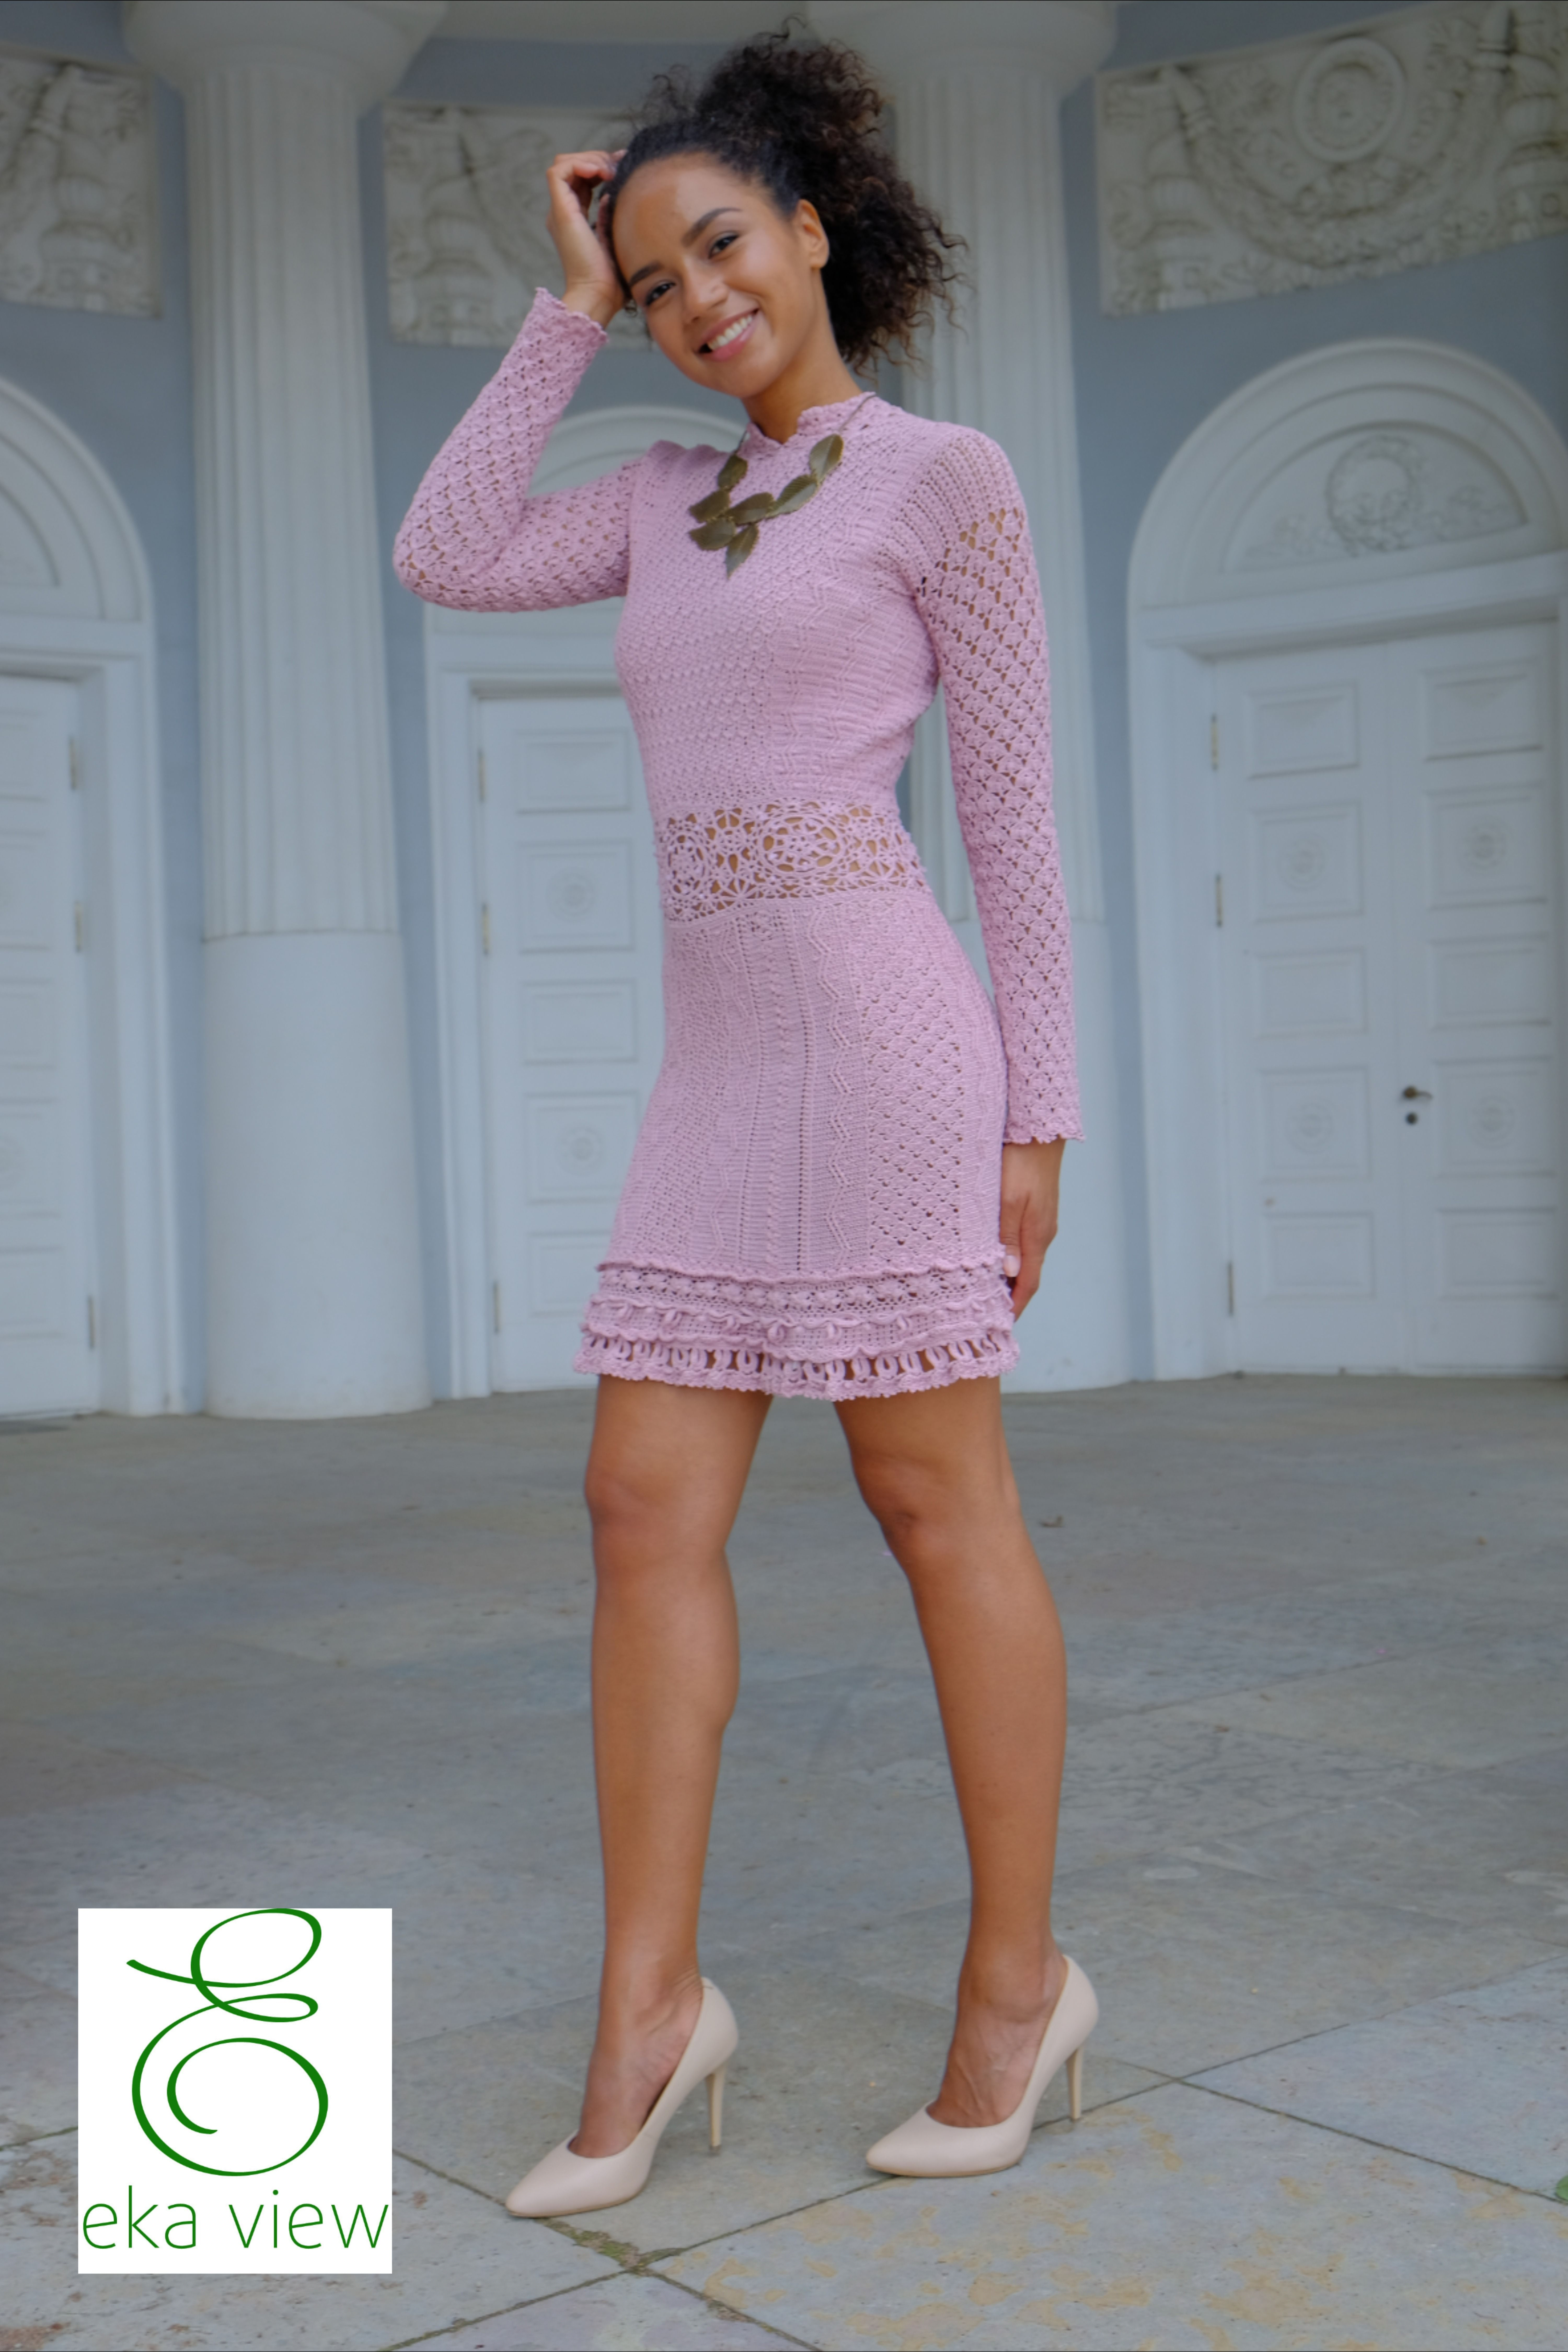 Little pink dress Fashion crochet look Ideally wedding guest outfit Decor with crystals Swarovski